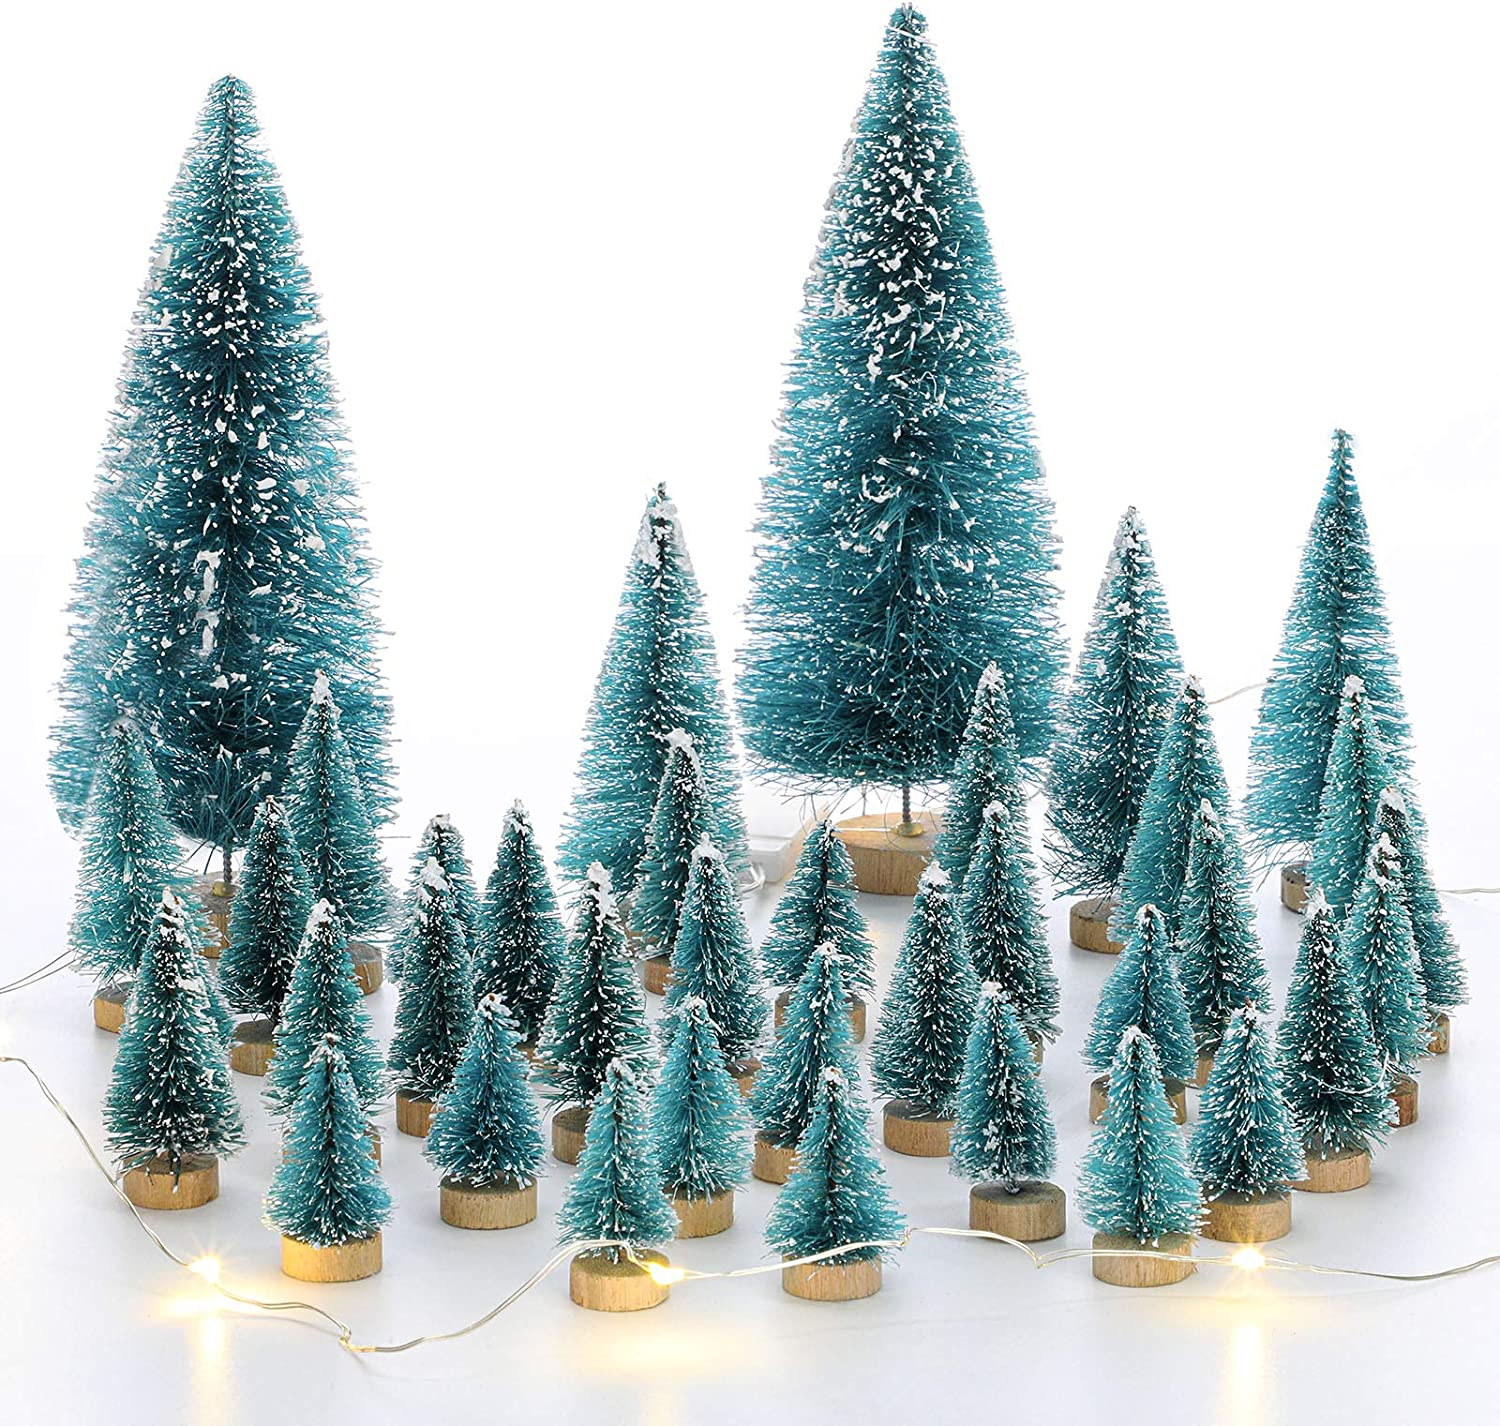 46 Pieces Mini Christmas Trees Artificial Mini Sisal Pine Snow Frost Trees Wood Base Green Bottle Brush Trees with Xmas Tree Light for Christmas DIY Craft Party Decoration